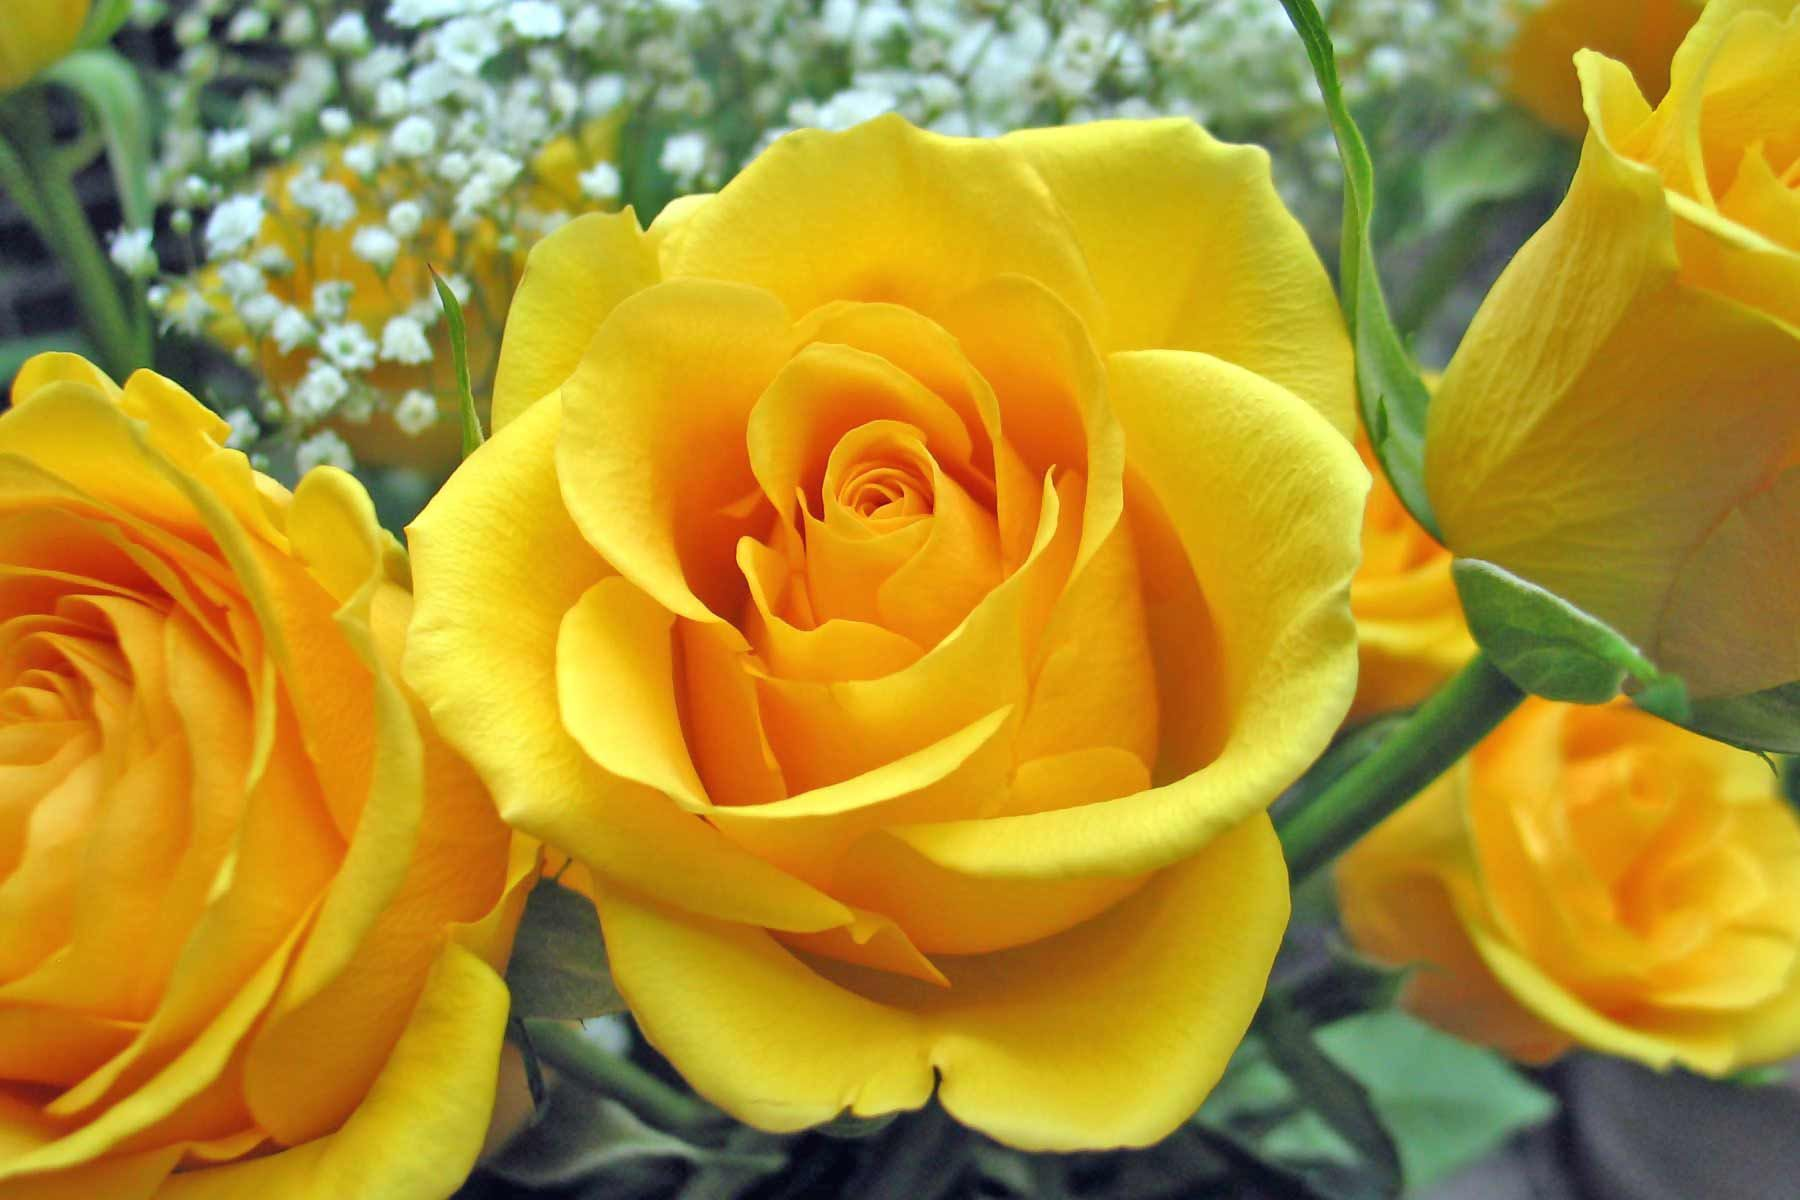 Yellow flowers yellow roses texas and flowers yellow roses were my mothers favorite flower thought i would share these with you brother since i see yellow rose is your favorite flower too mightylinksfo